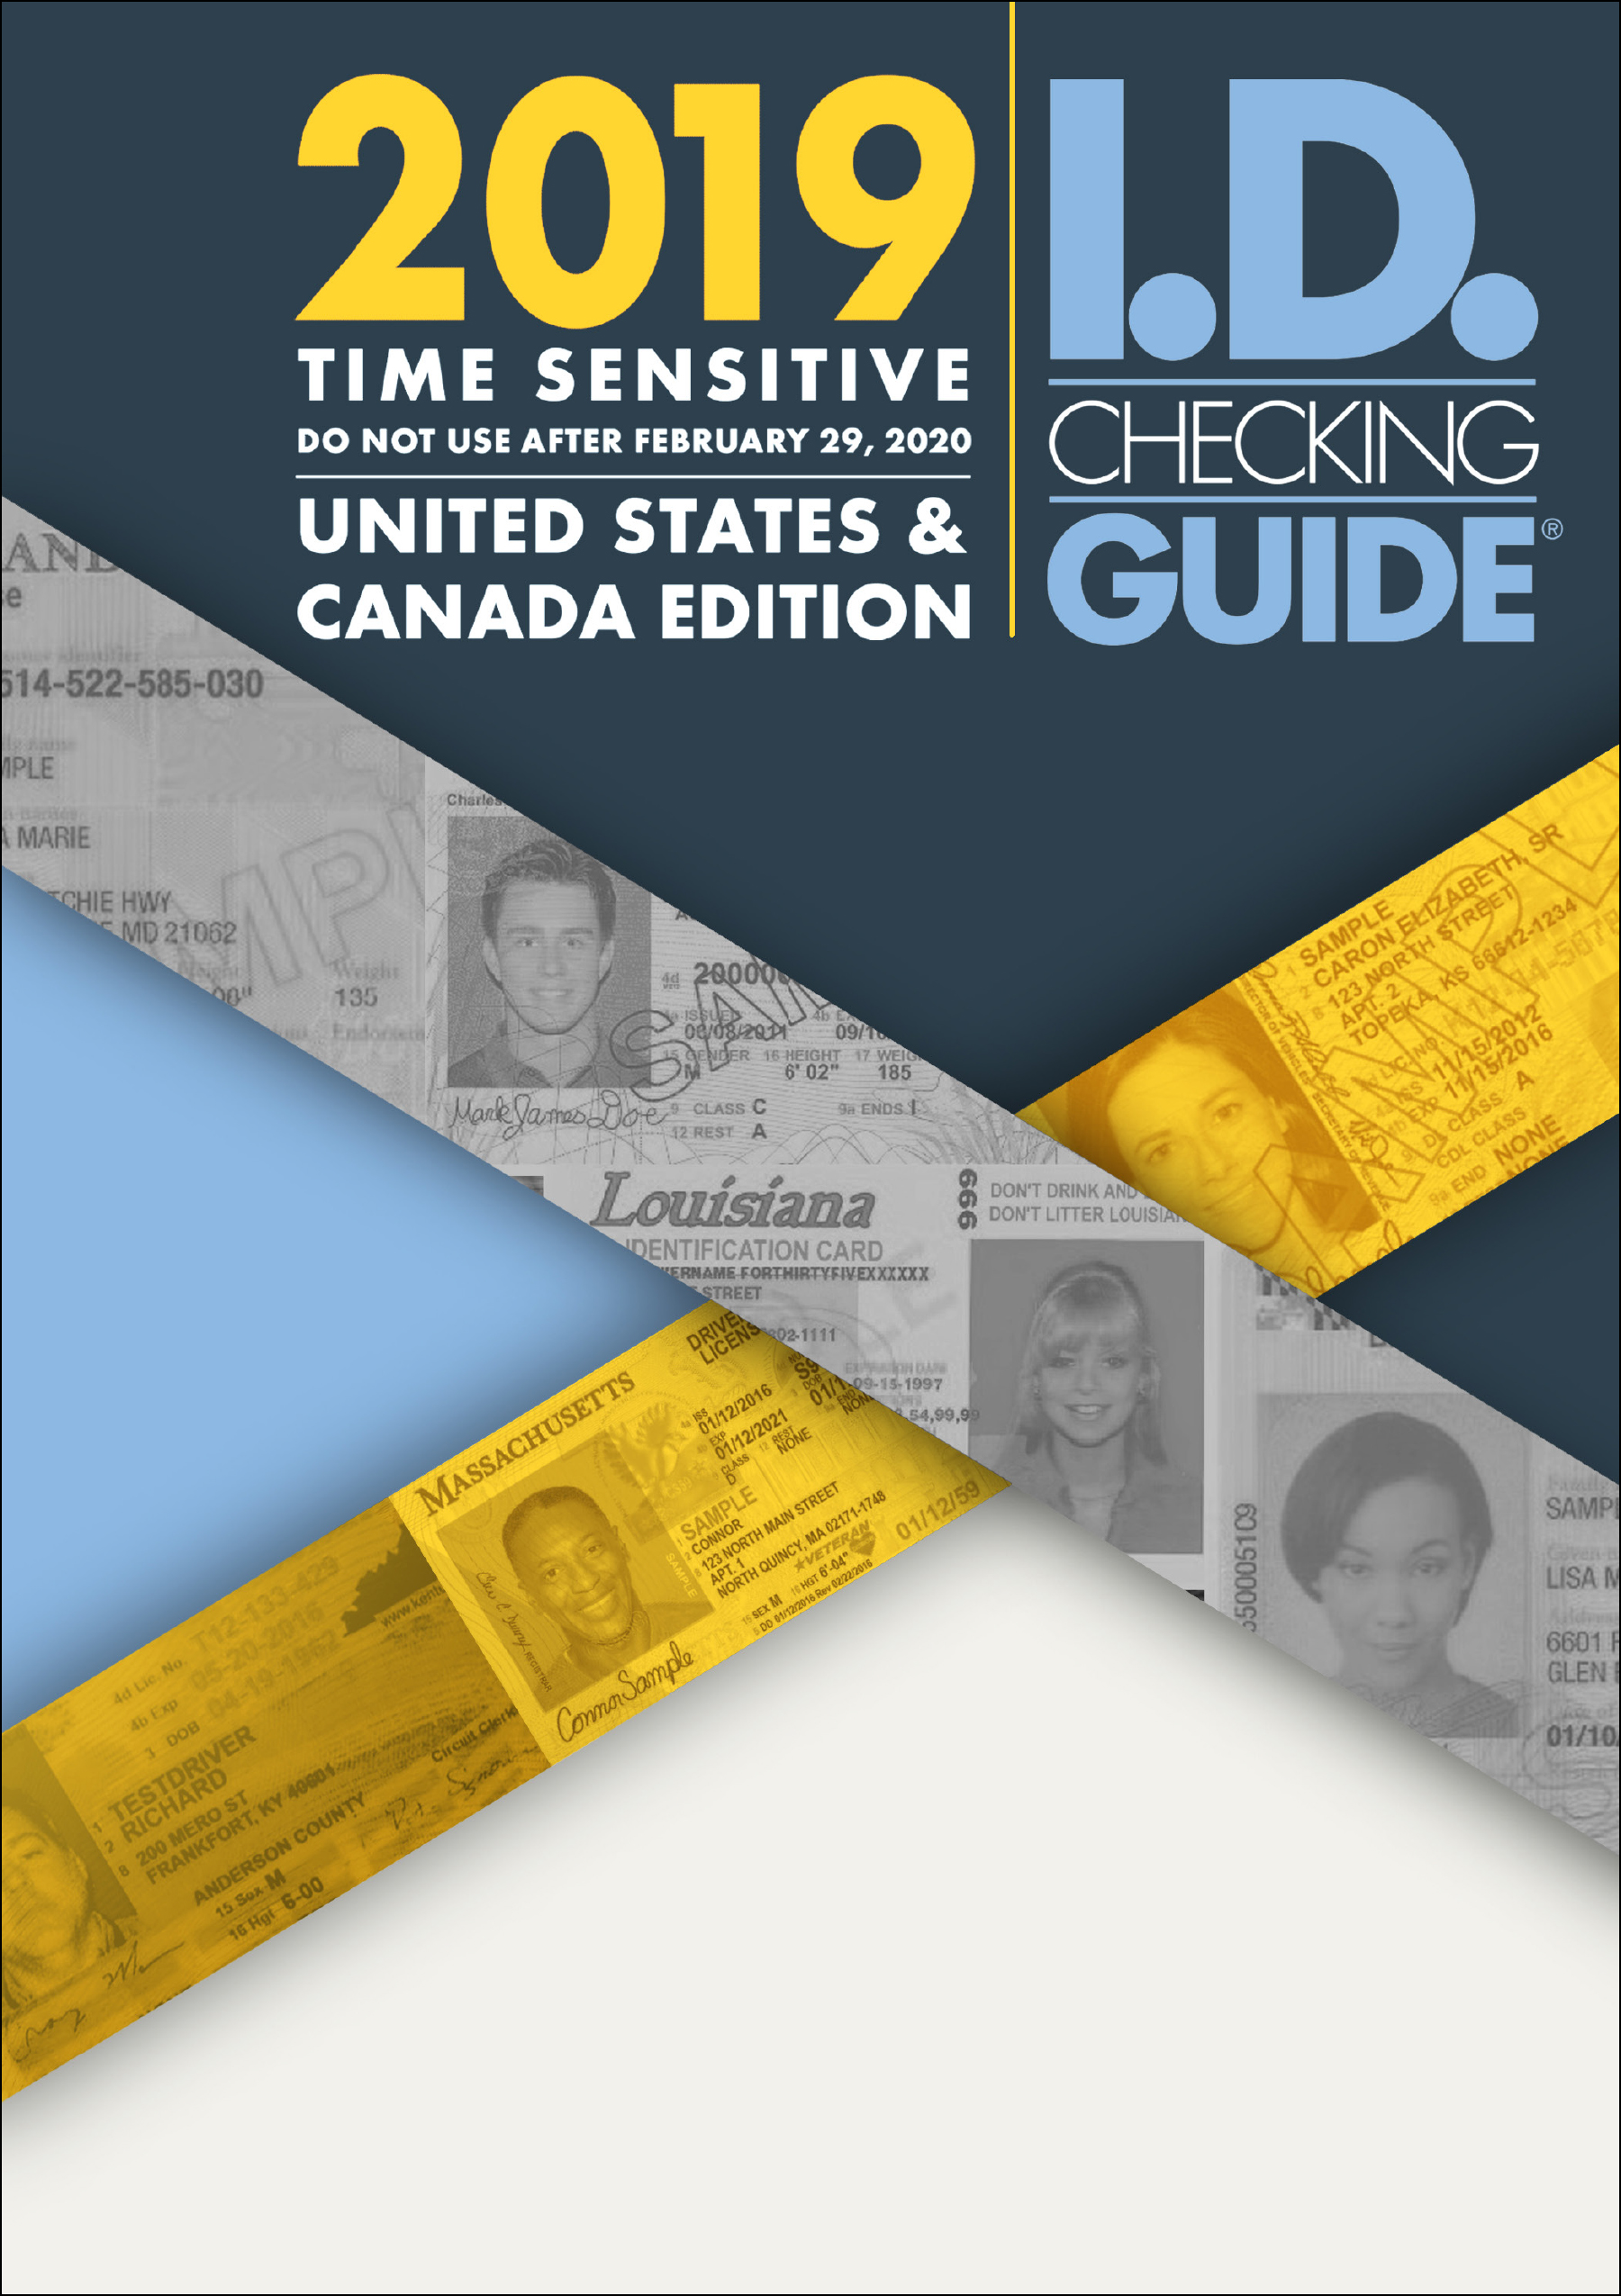 ID Checking Guide 2019 Edition